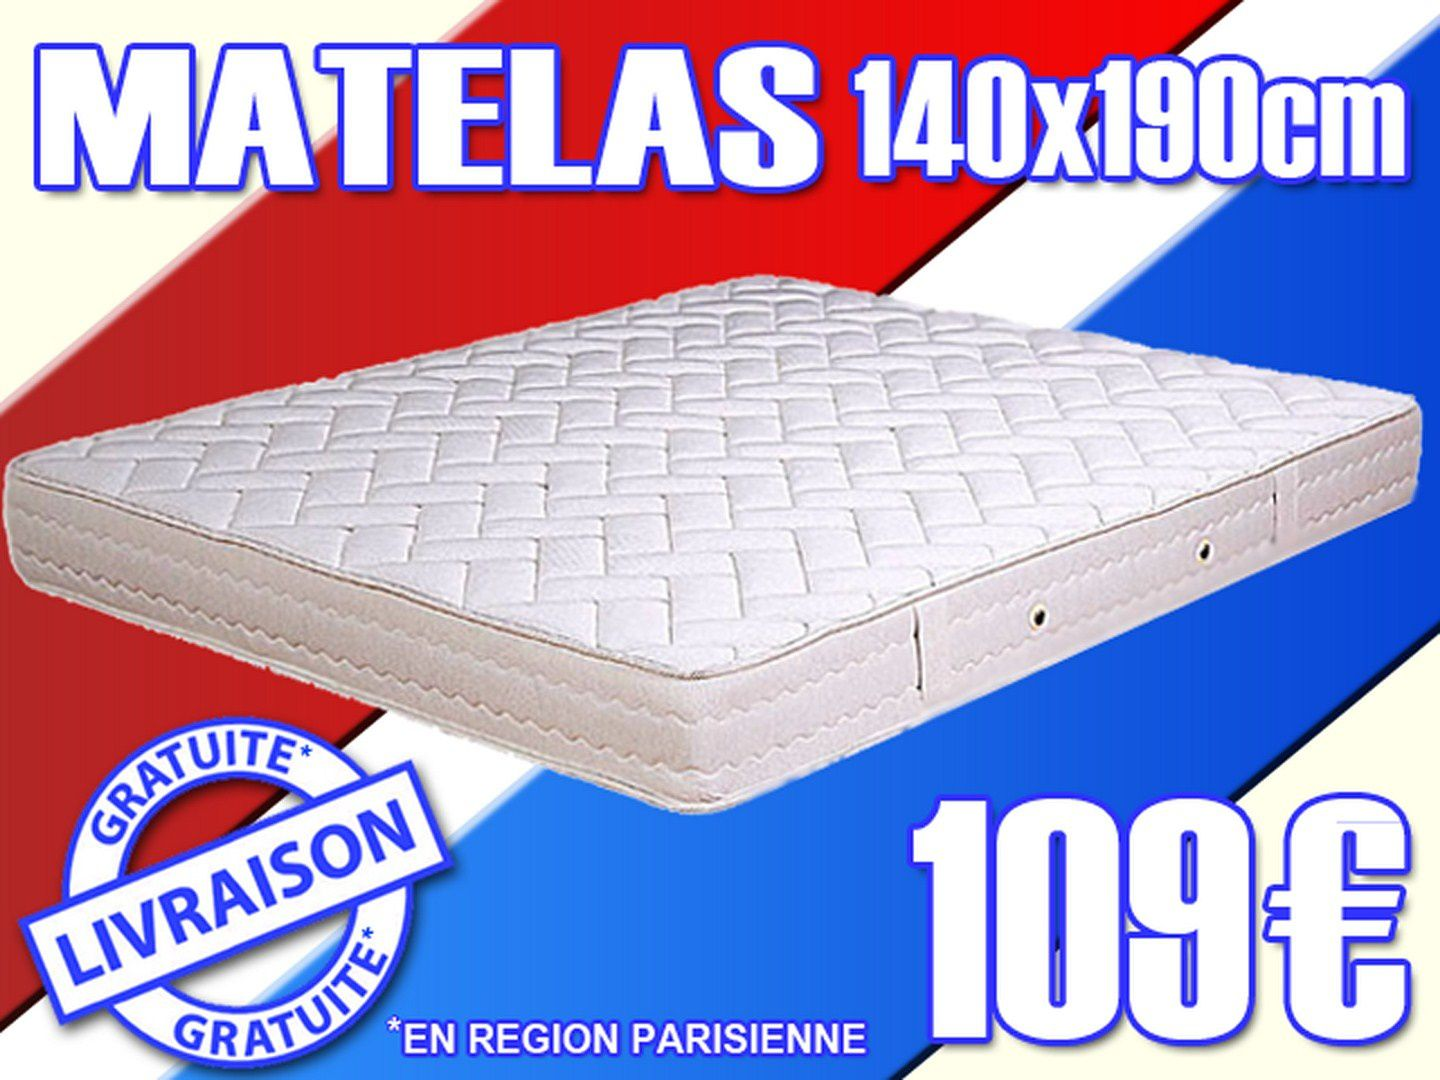 matelas 140x190 cm neuf garantie 5 ans anti crise. Black Bedroom Furniture Sets. Home Design Ideas